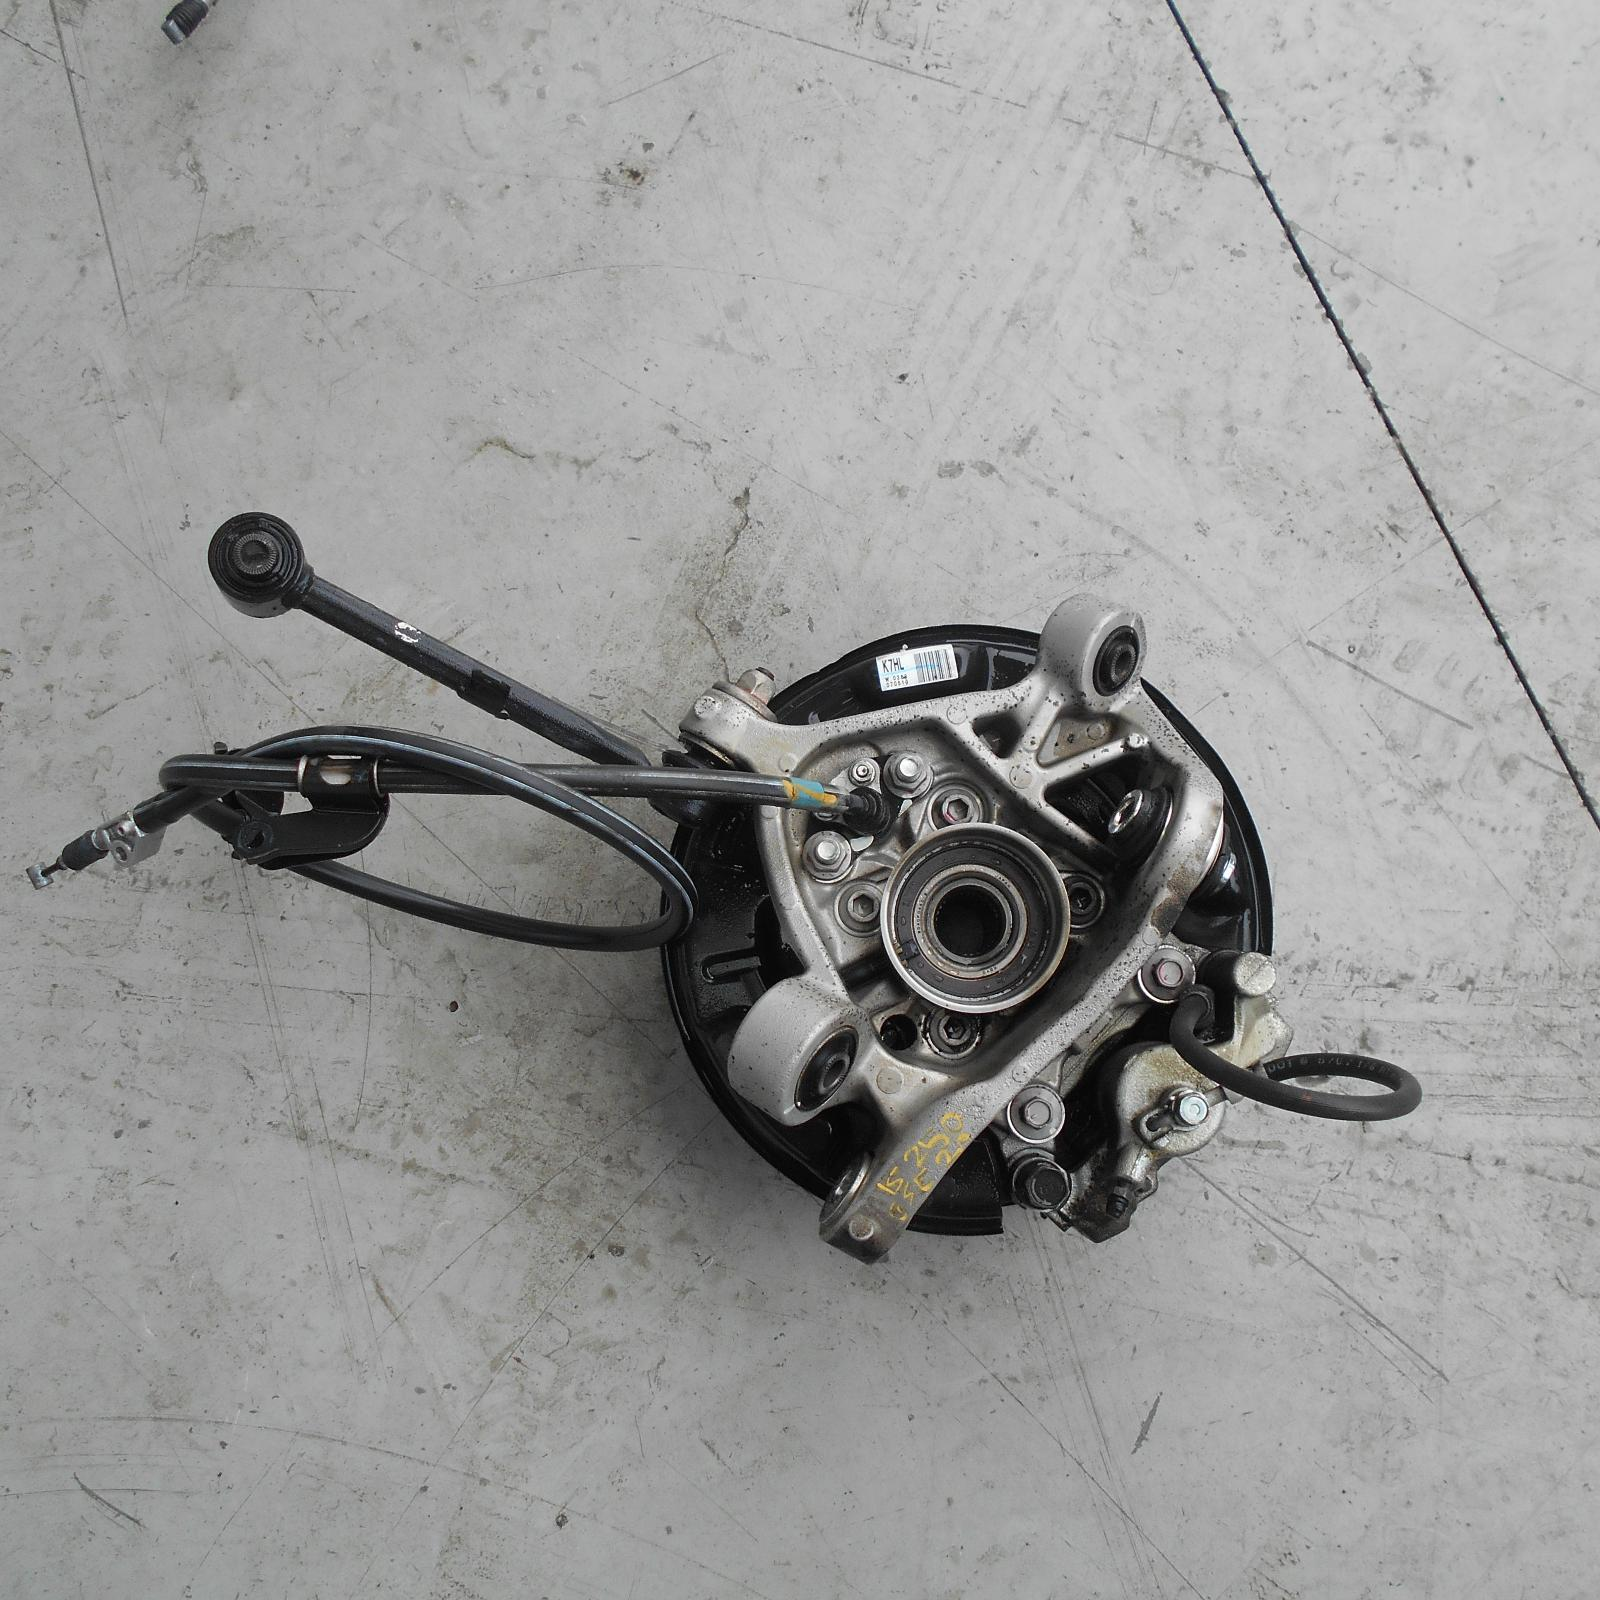 LEXUS IS250/IS250C, Left Rear Hub Assembly, GSE20R 11/05-07/13